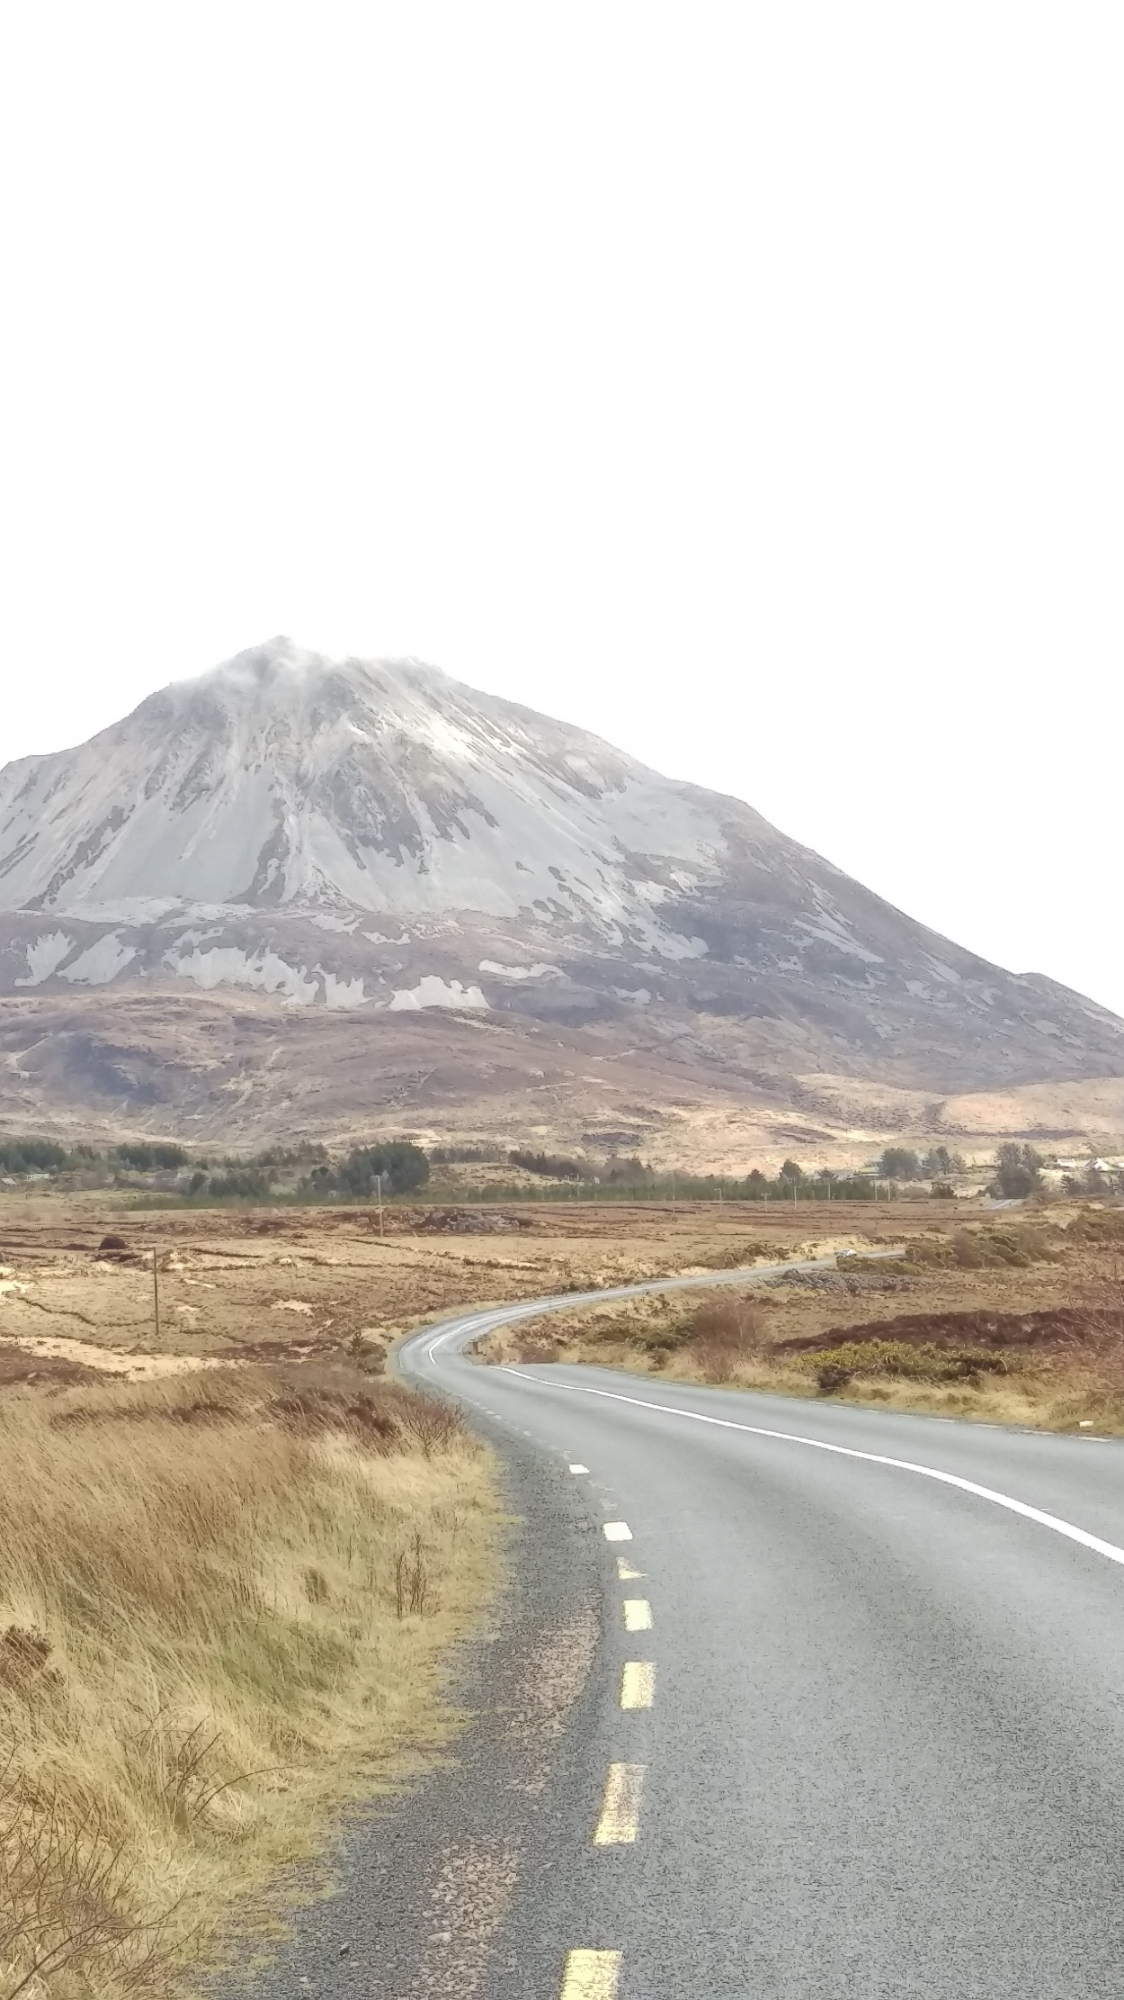 MOUNT ERRIGAL - EASTER SUNDAY 2016